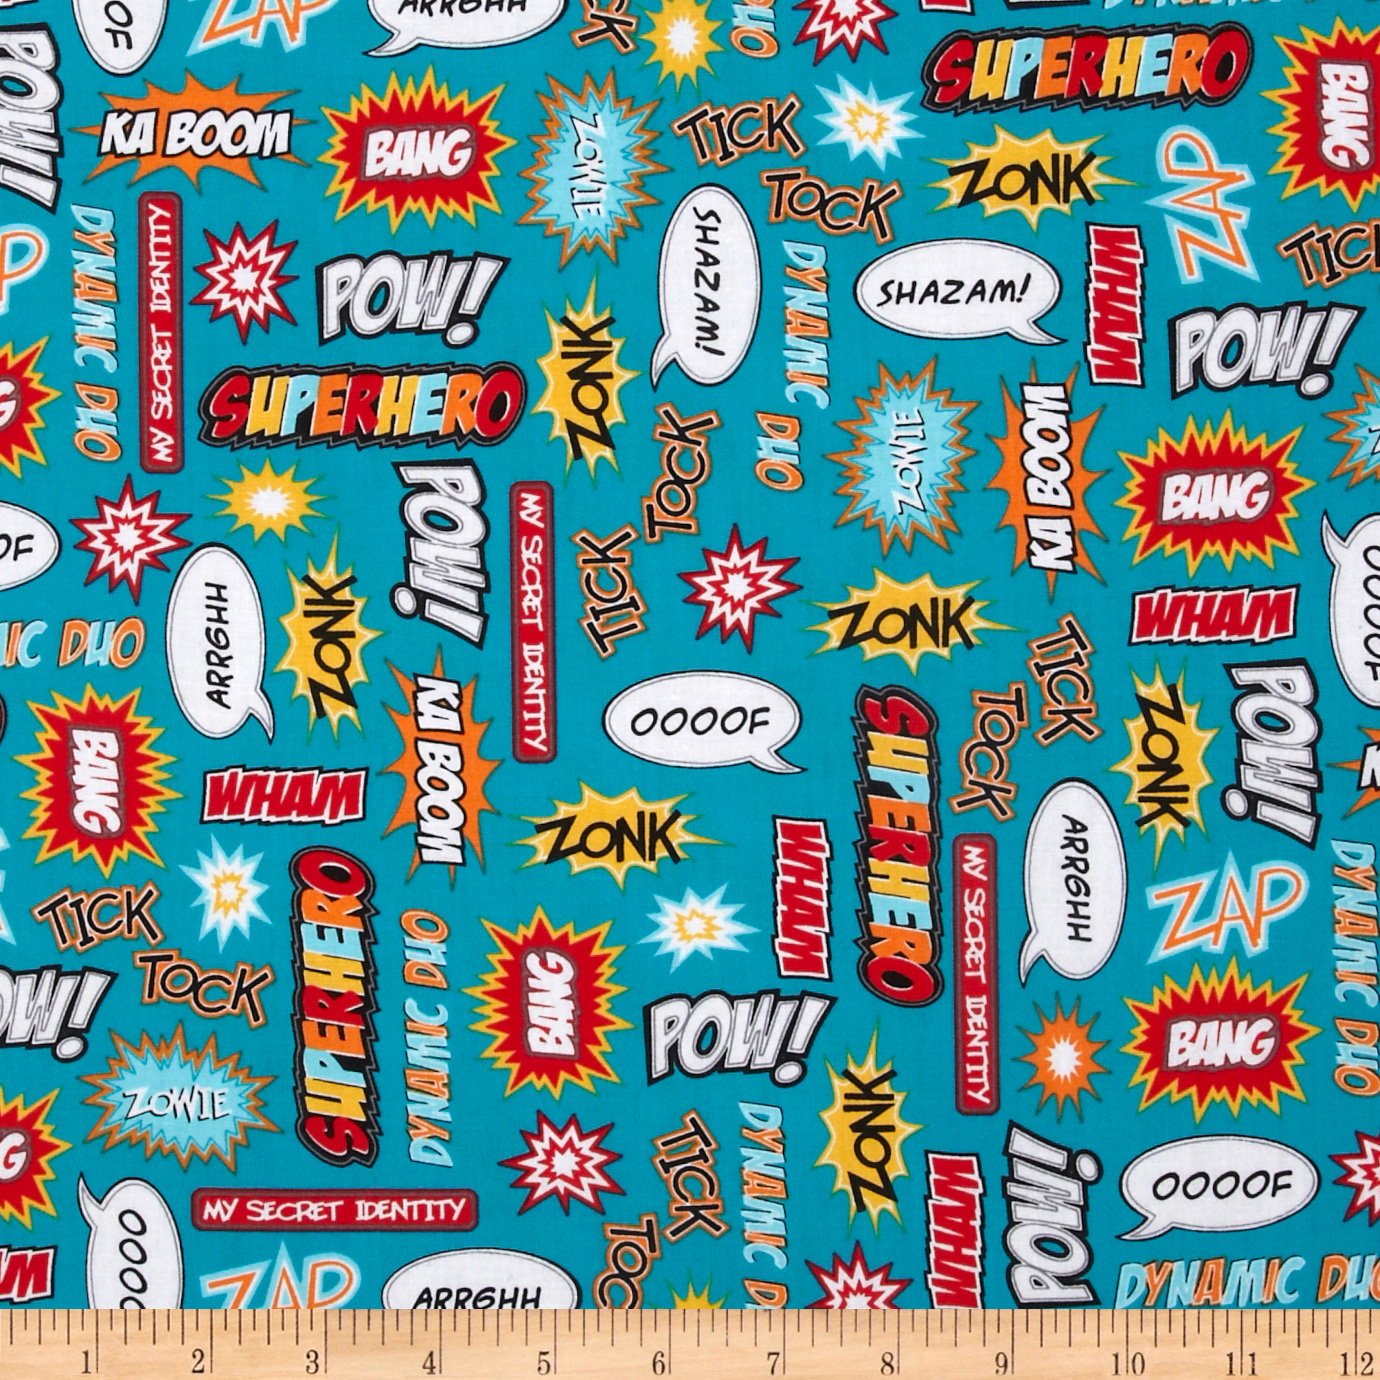 Superhero Action Words Bright Fabric